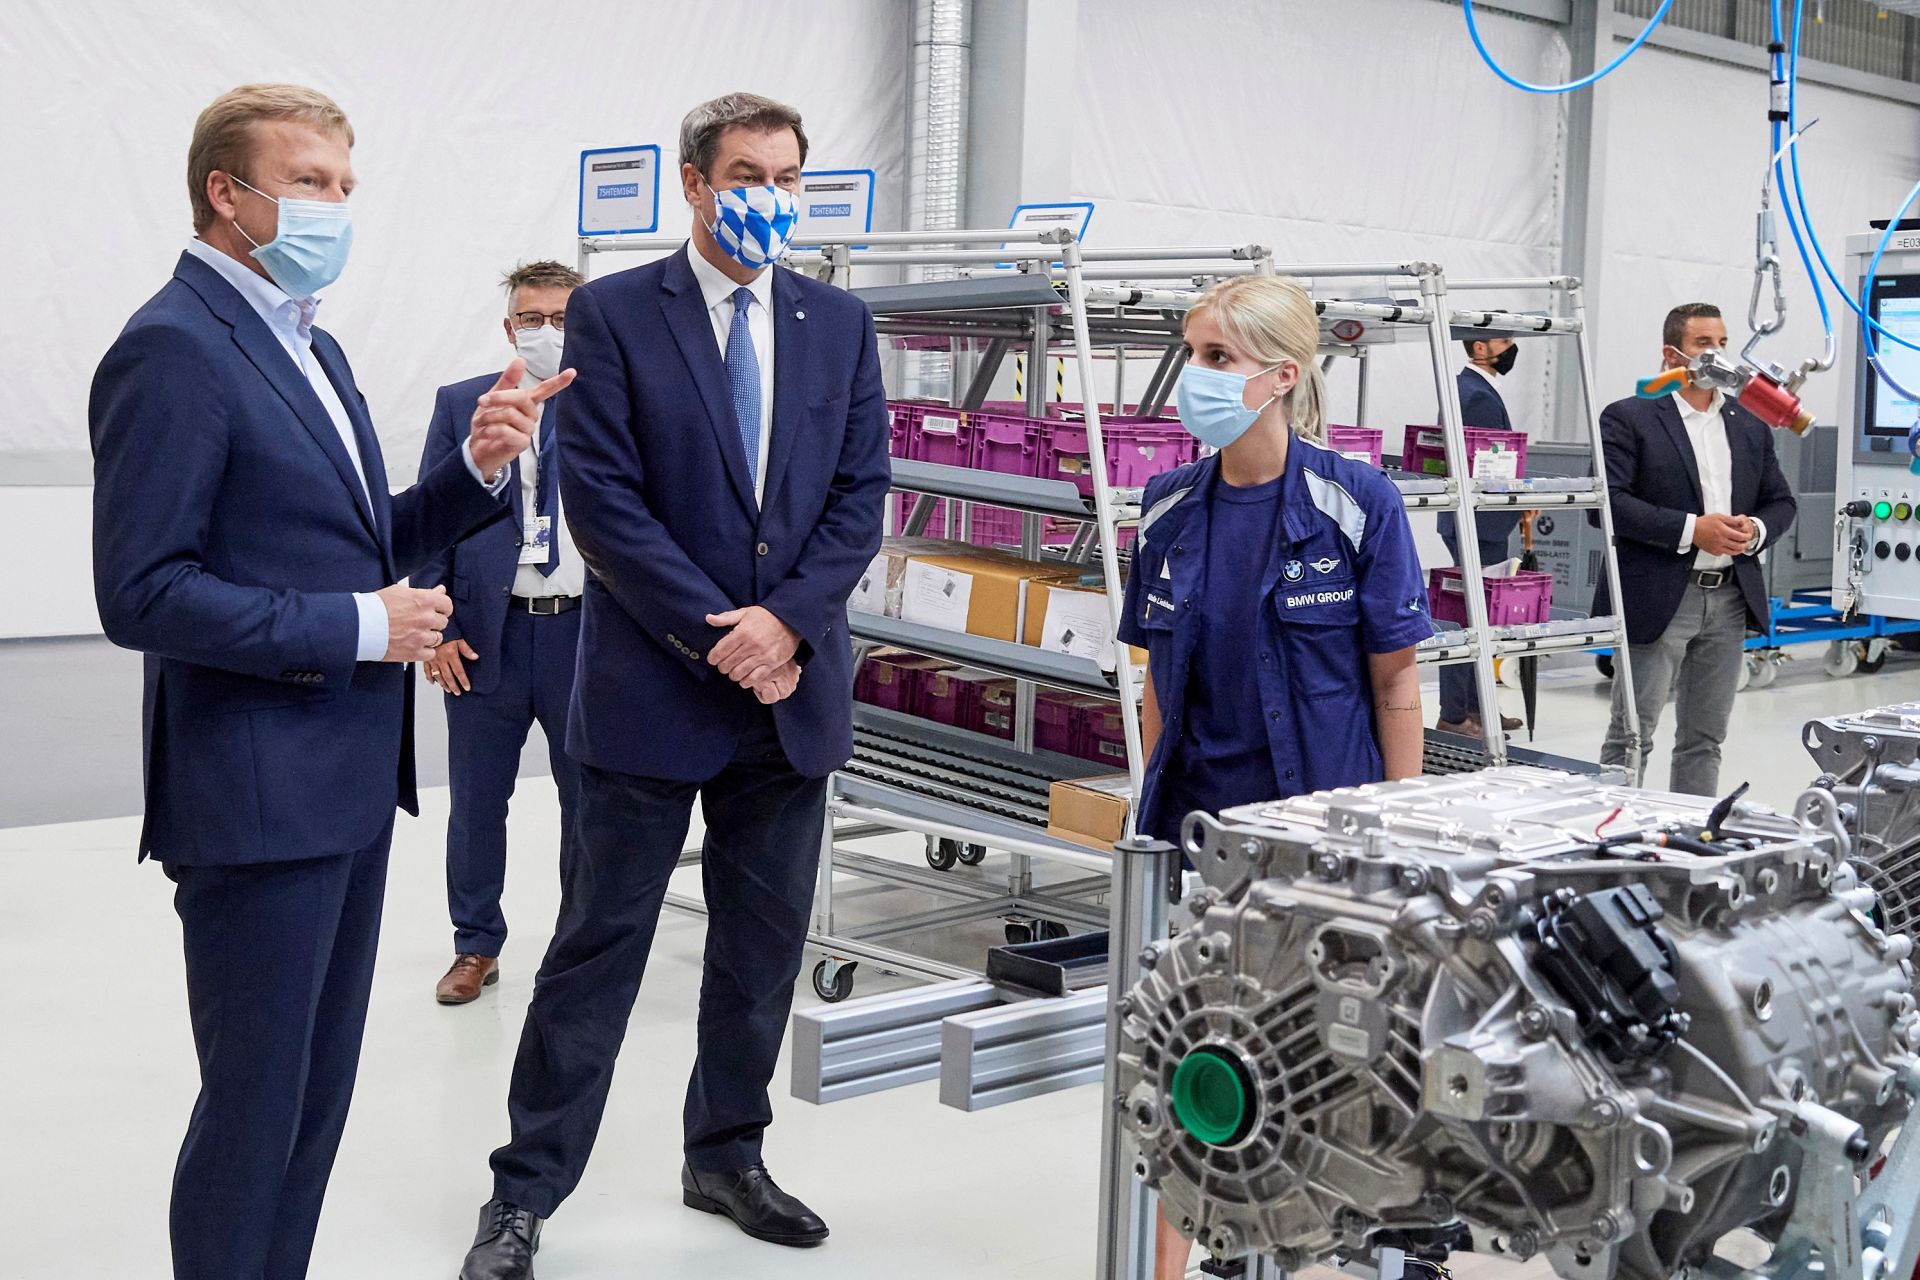 Competence Centre for E Drive Production in Dingolfing 21